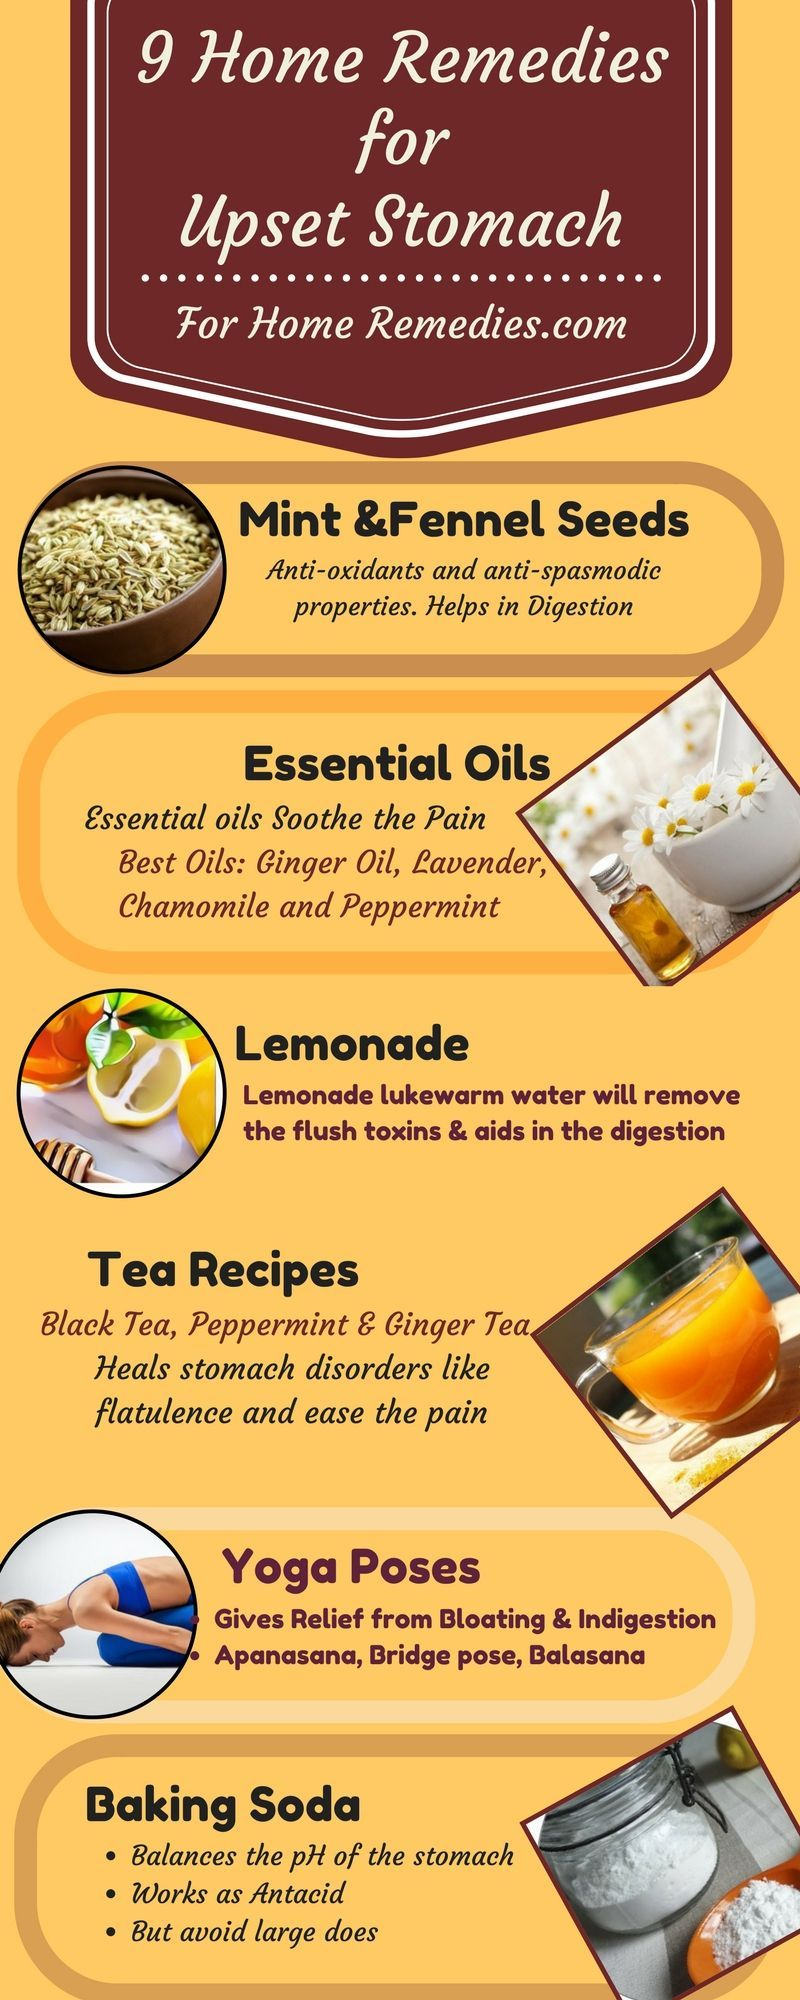 home remedies for upset stomach: natural home remedies, essential